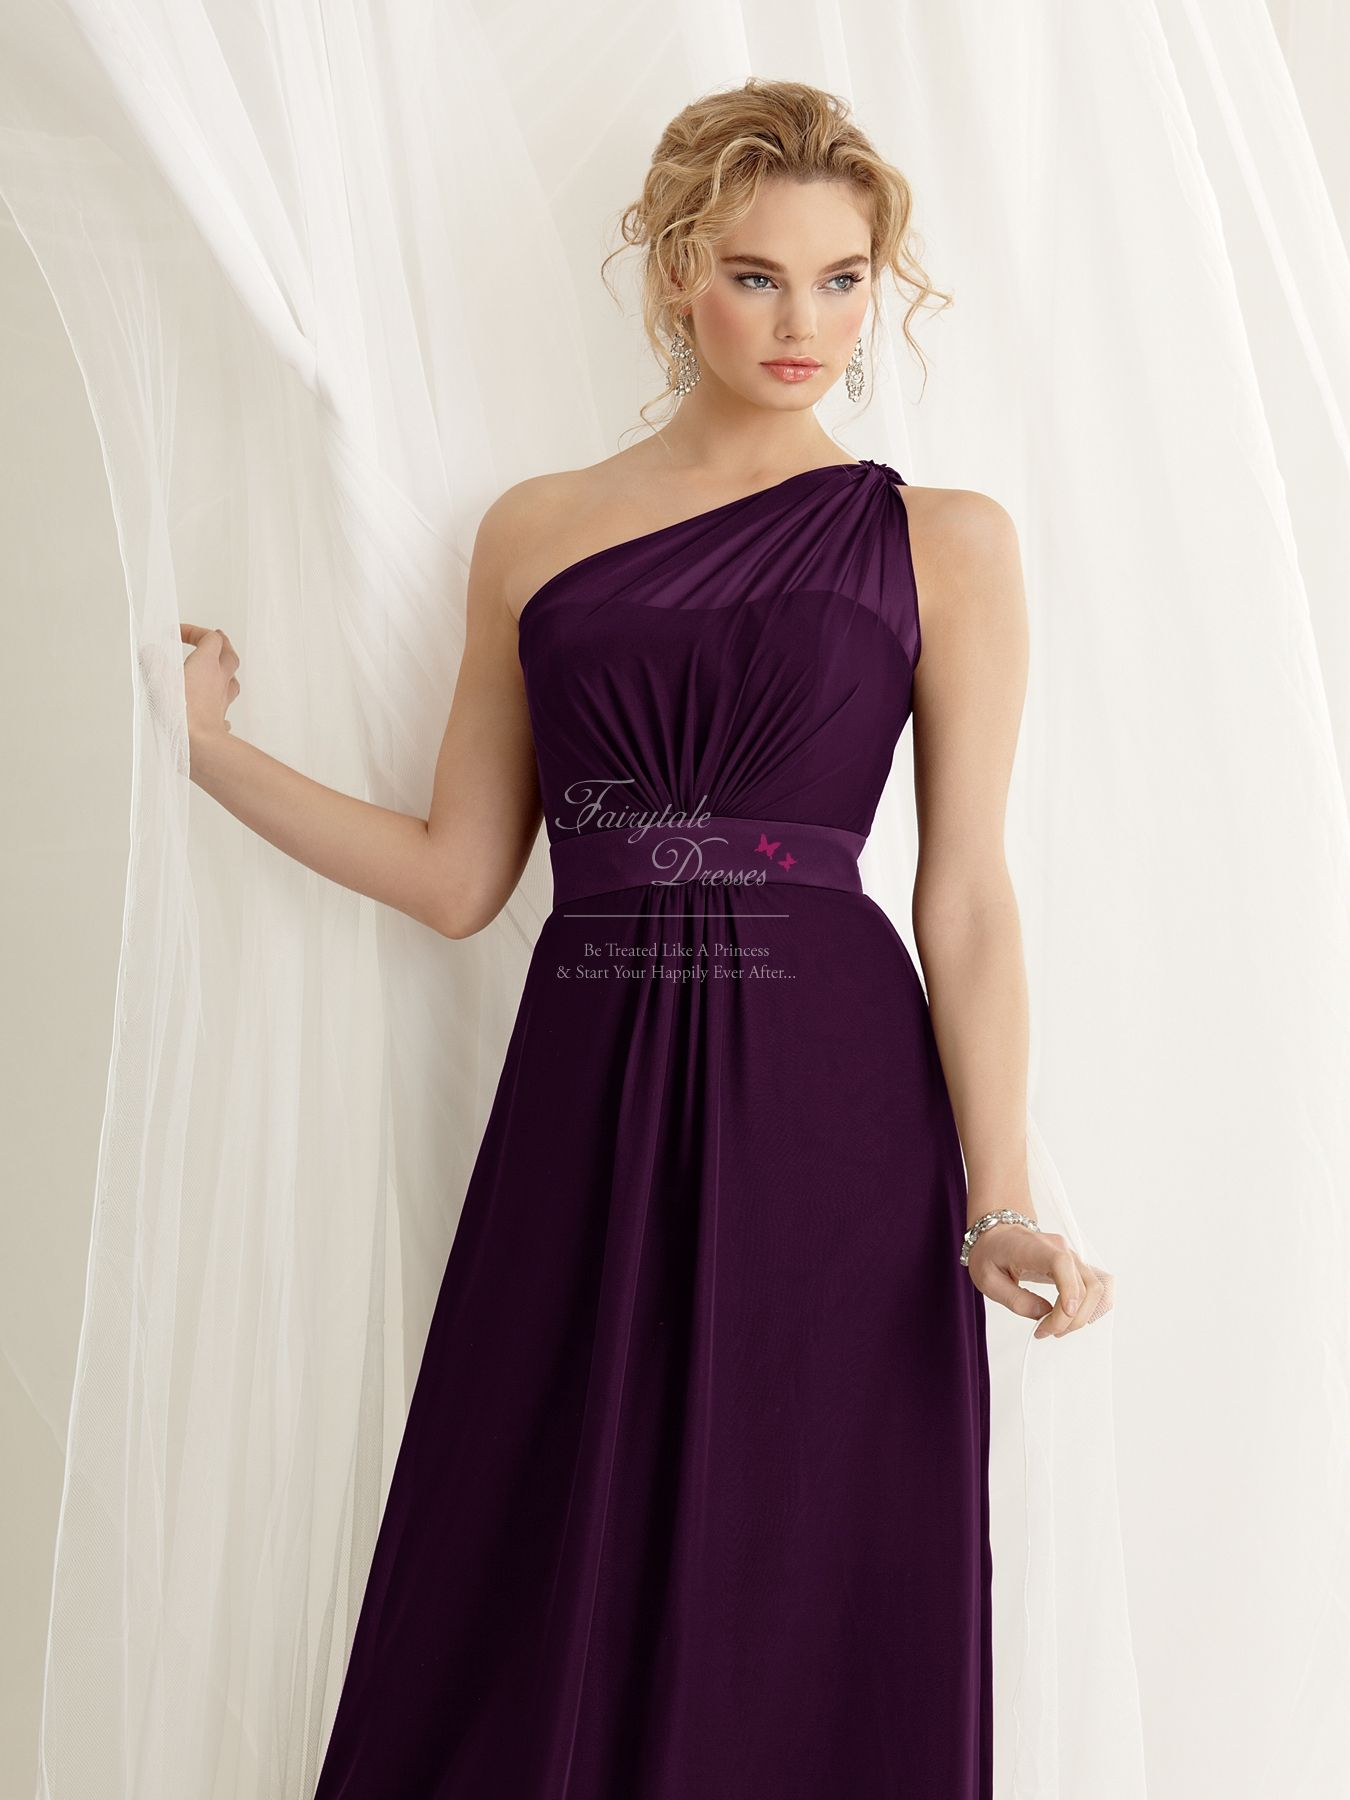 One shoulder strap cadburys purple bridesmaid dress 12019 purple jordan 471 chocolate brown size 12 one shoulder bridesmaid dress ombrellifo Image collections